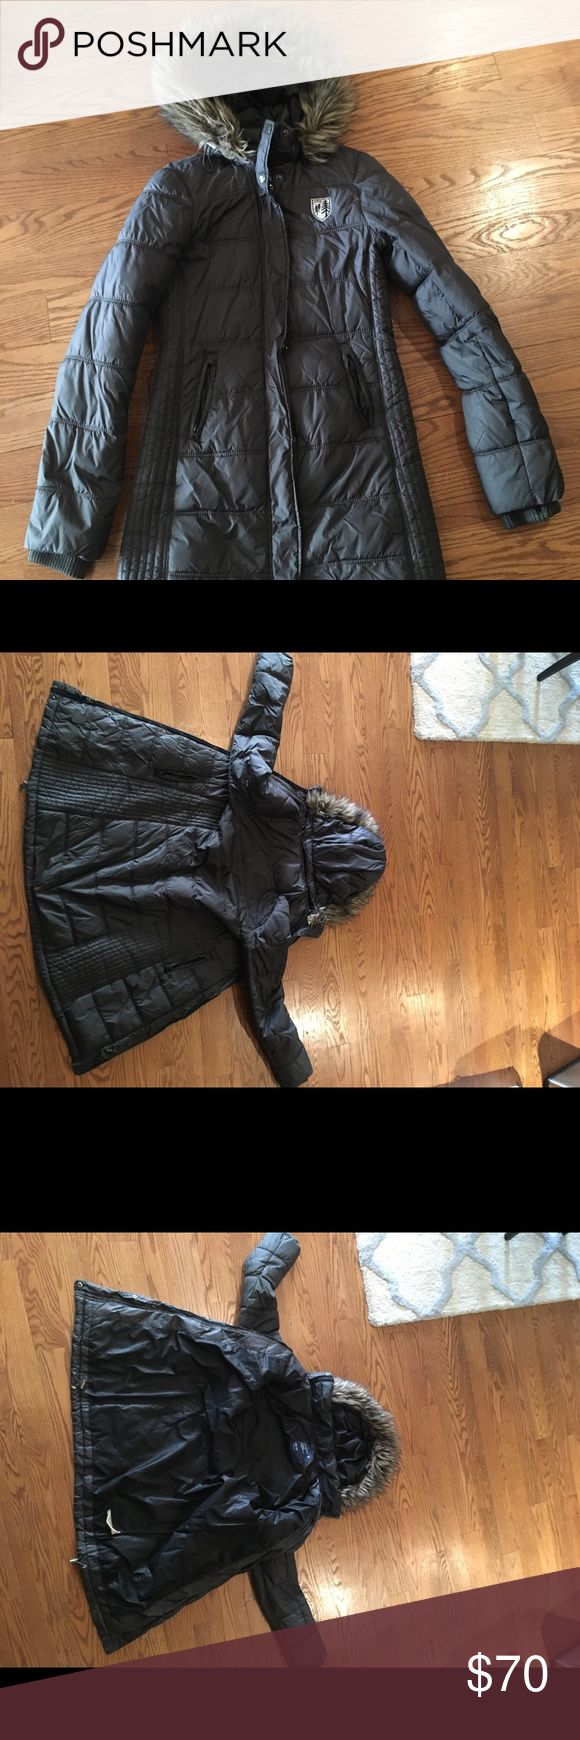 Stay Warm with this Winter Coat Puffer coat to keep up warm in the winter months. Fur lined hood. The zipper can be opened and closed on both the top and bottom of the jacket to allow for flexibility to on how open you want the coat to be. American Eagle Outfitters Jackets & Coats Puffers